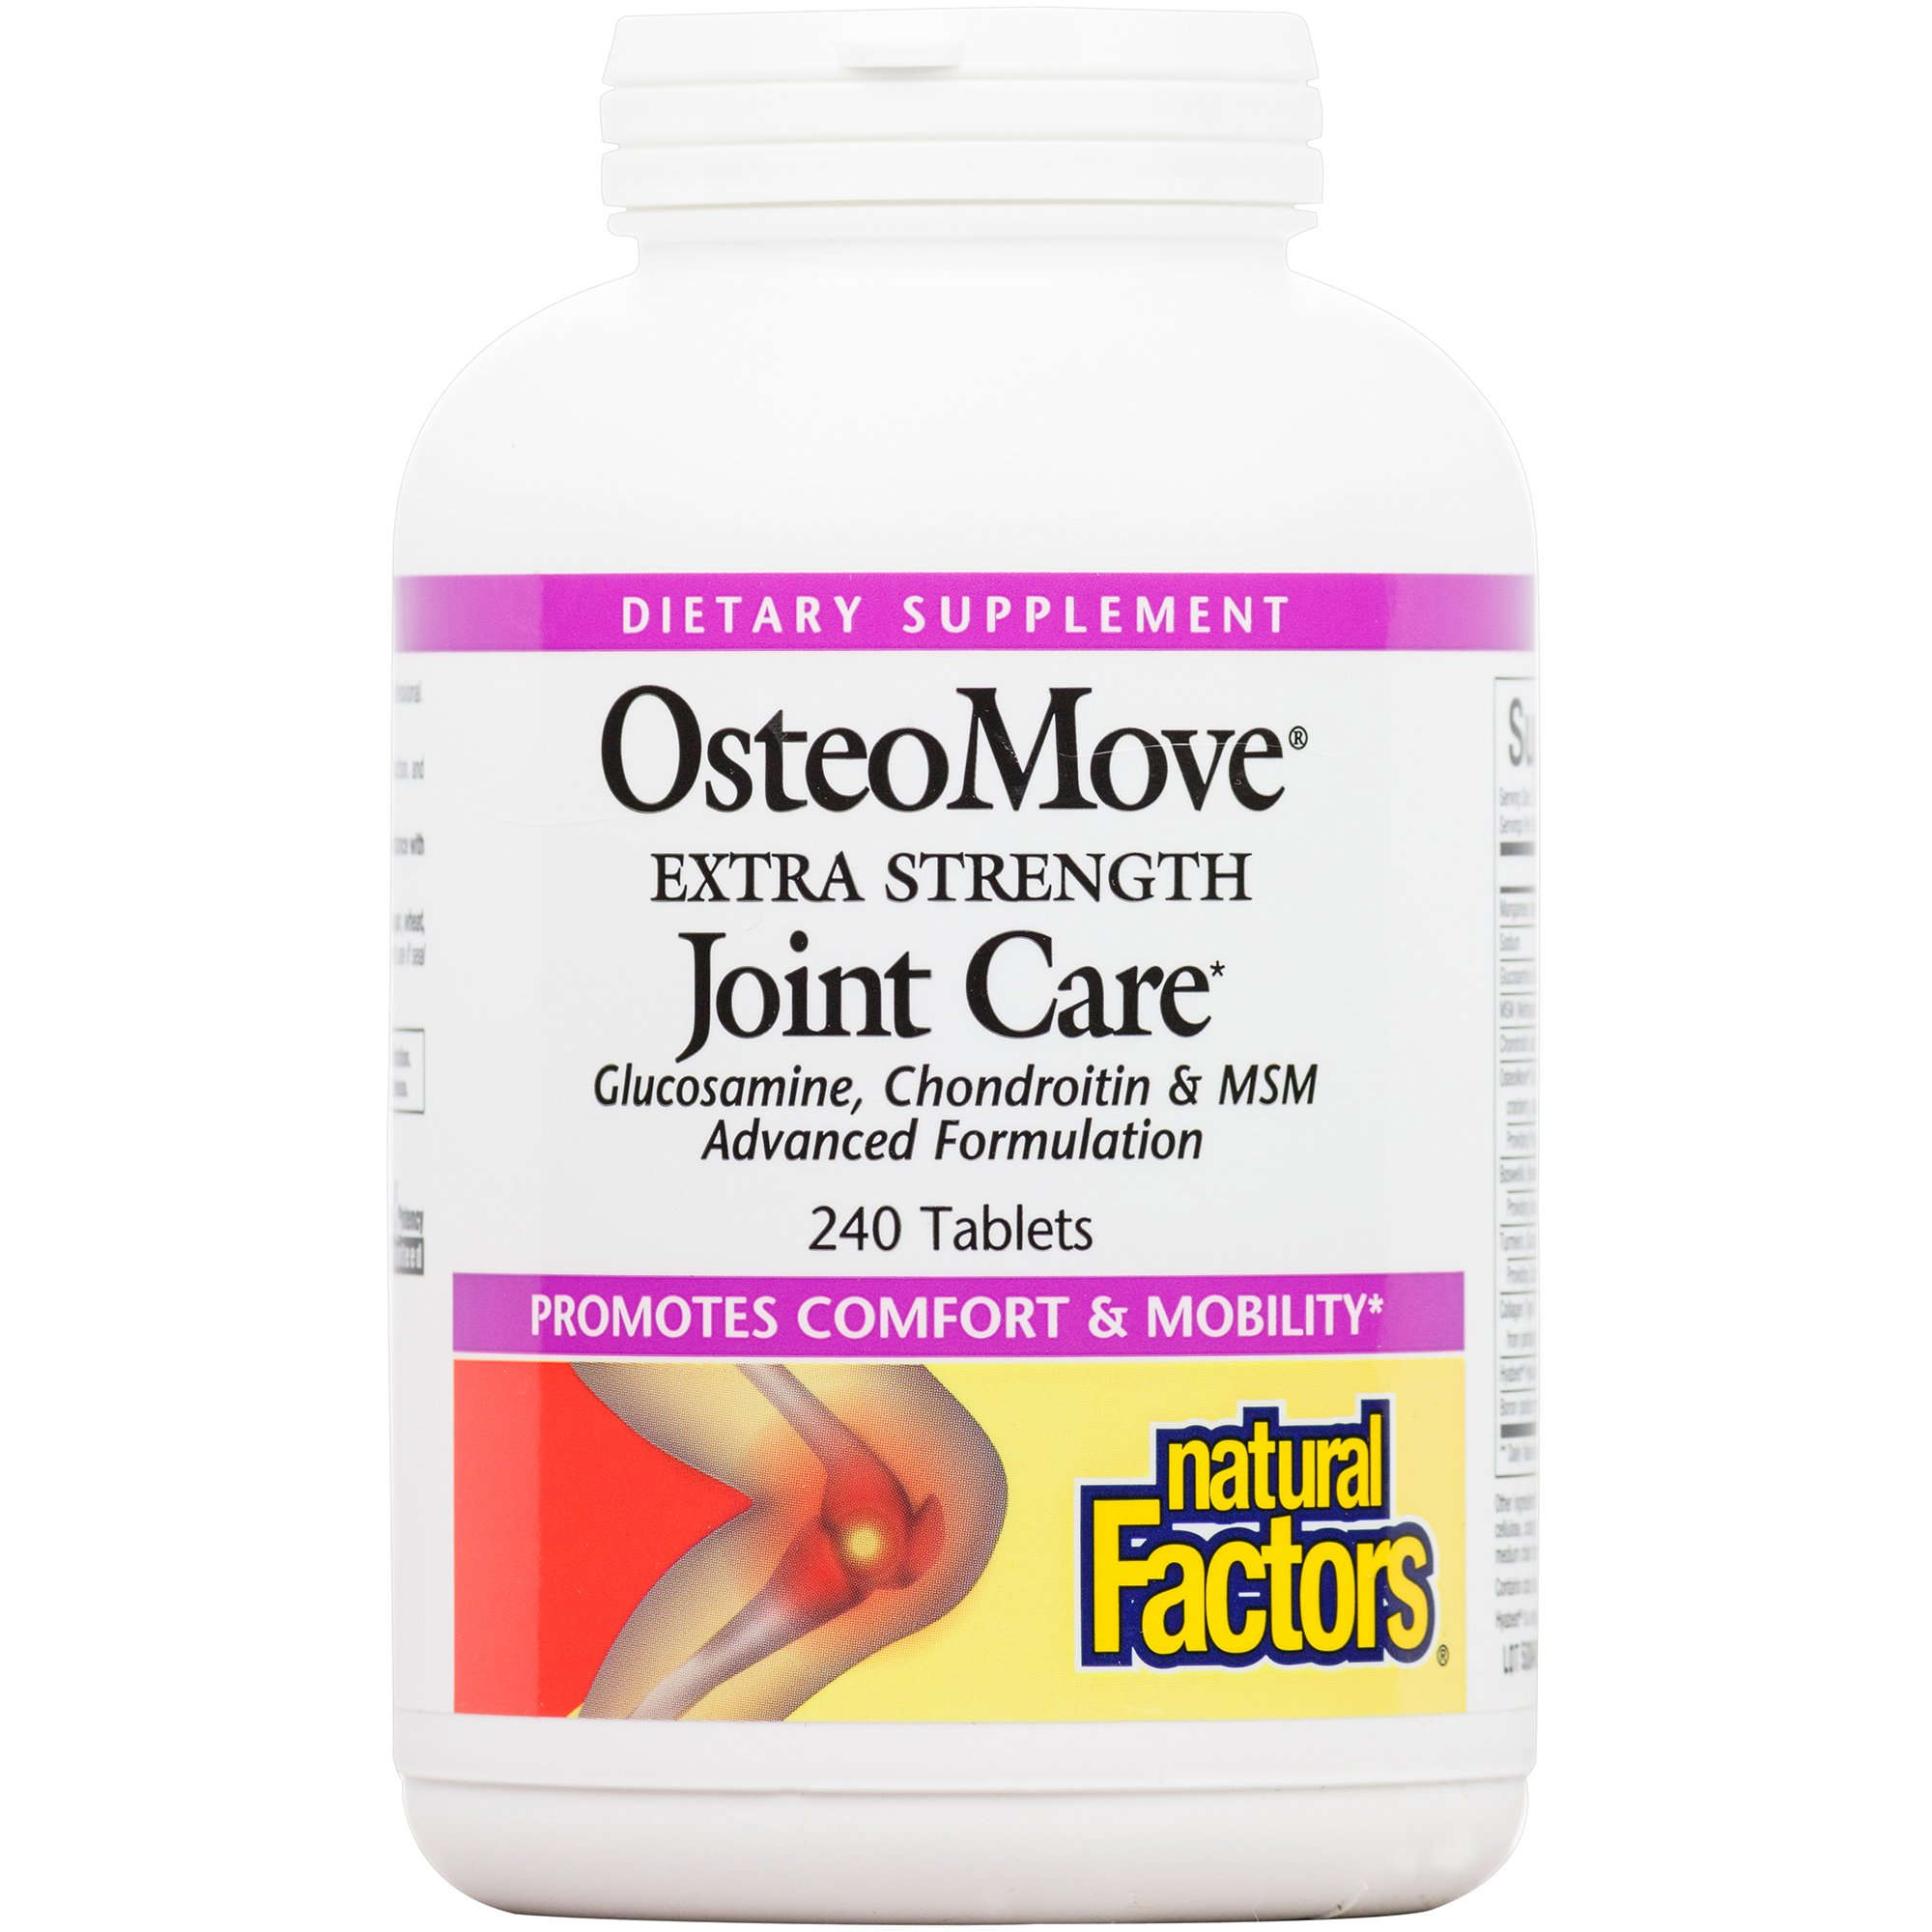 Natural Factors, OsteoMove Extra Strength Joint Care, Supports Healthy Muscles and Cartilage with Glucosamine, Chondroitin and MSM, 240 Tablets (120 Servings)